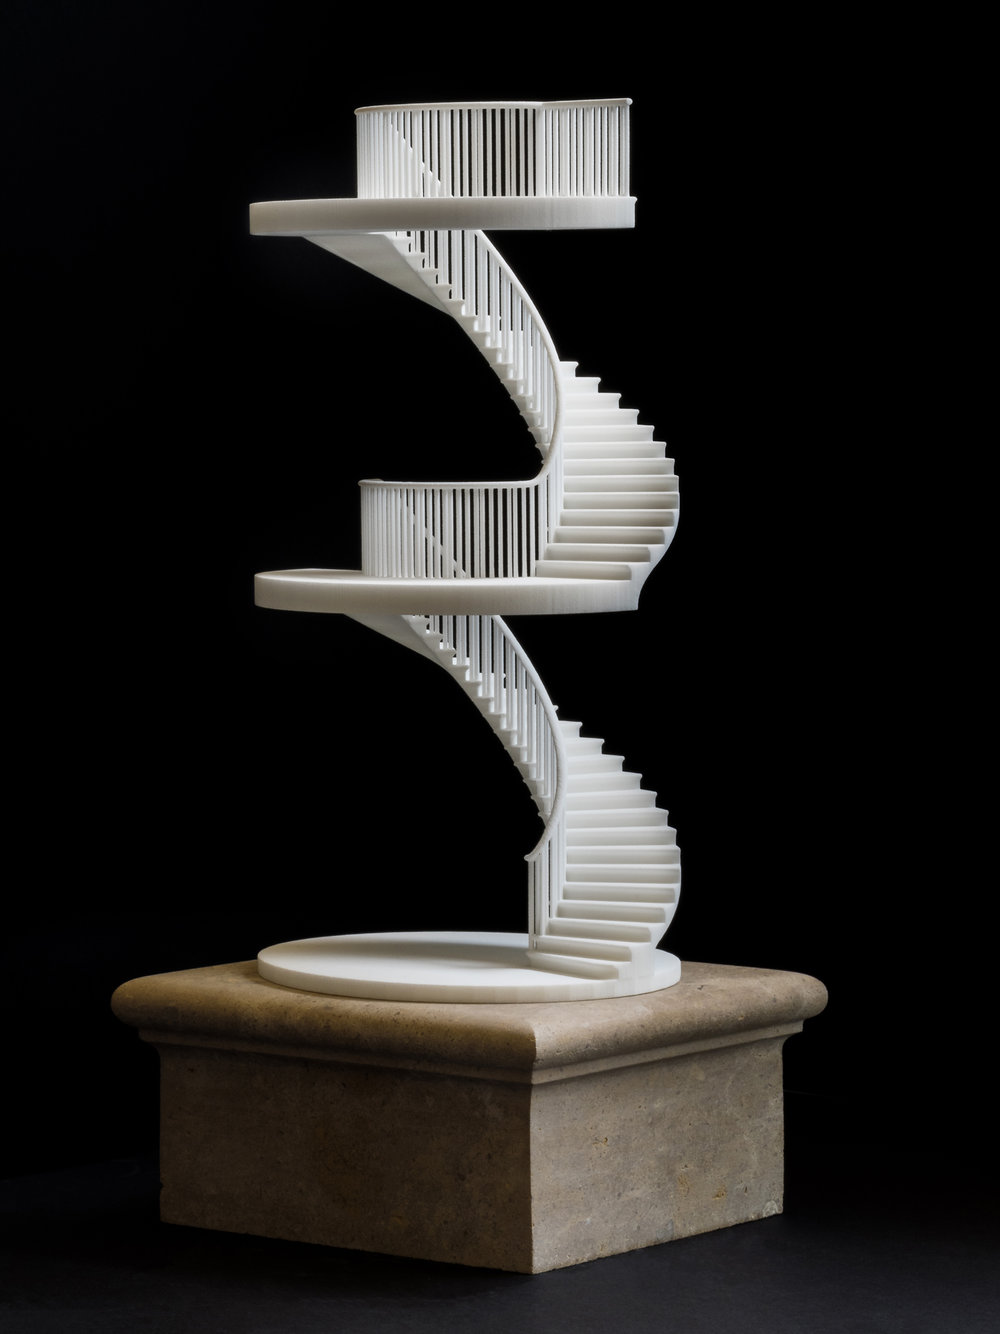 Charlton Brown Architects - Stair Model - 385 x 190 x 165mm.jpg